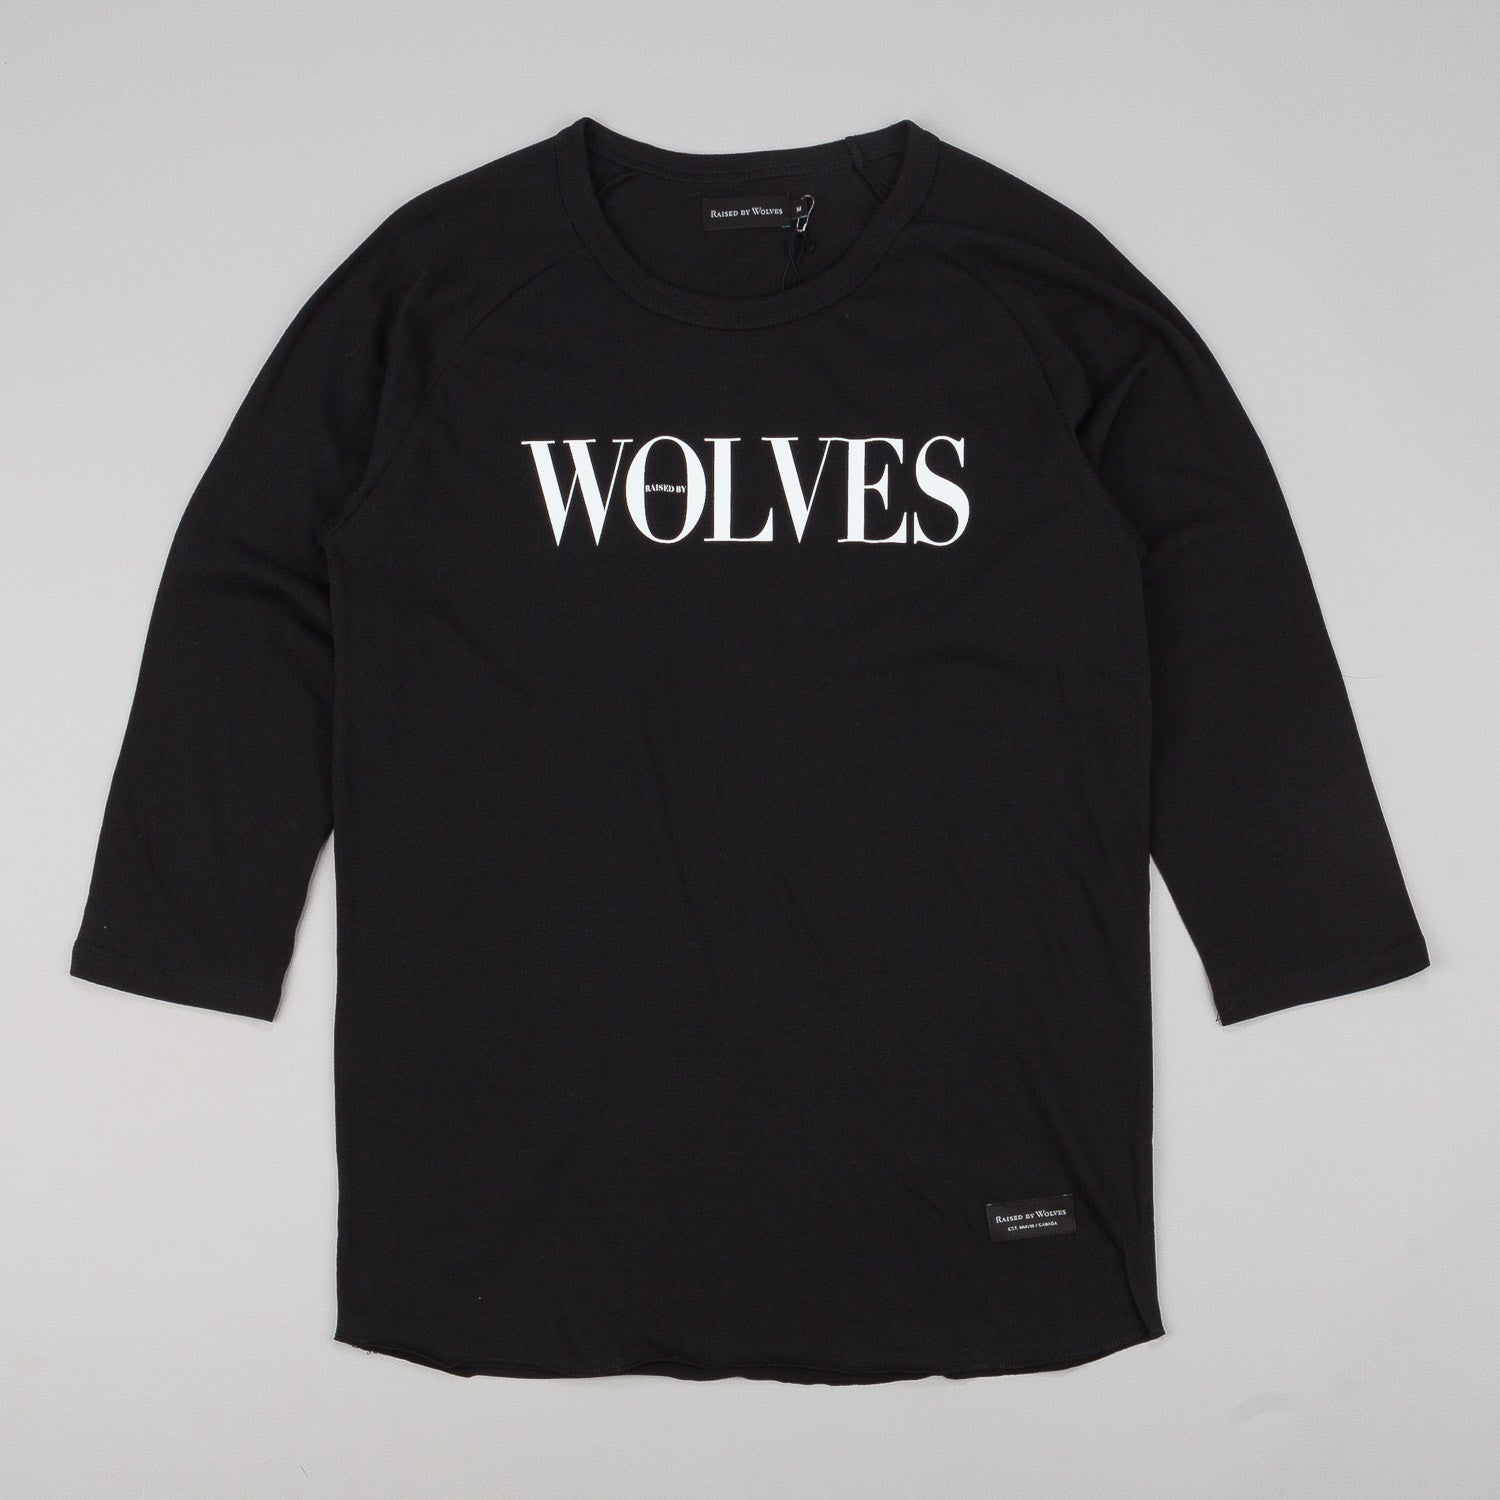 Raised By Wolves September Warm-Up 3/4 Sleeve Raglan T-Shirt